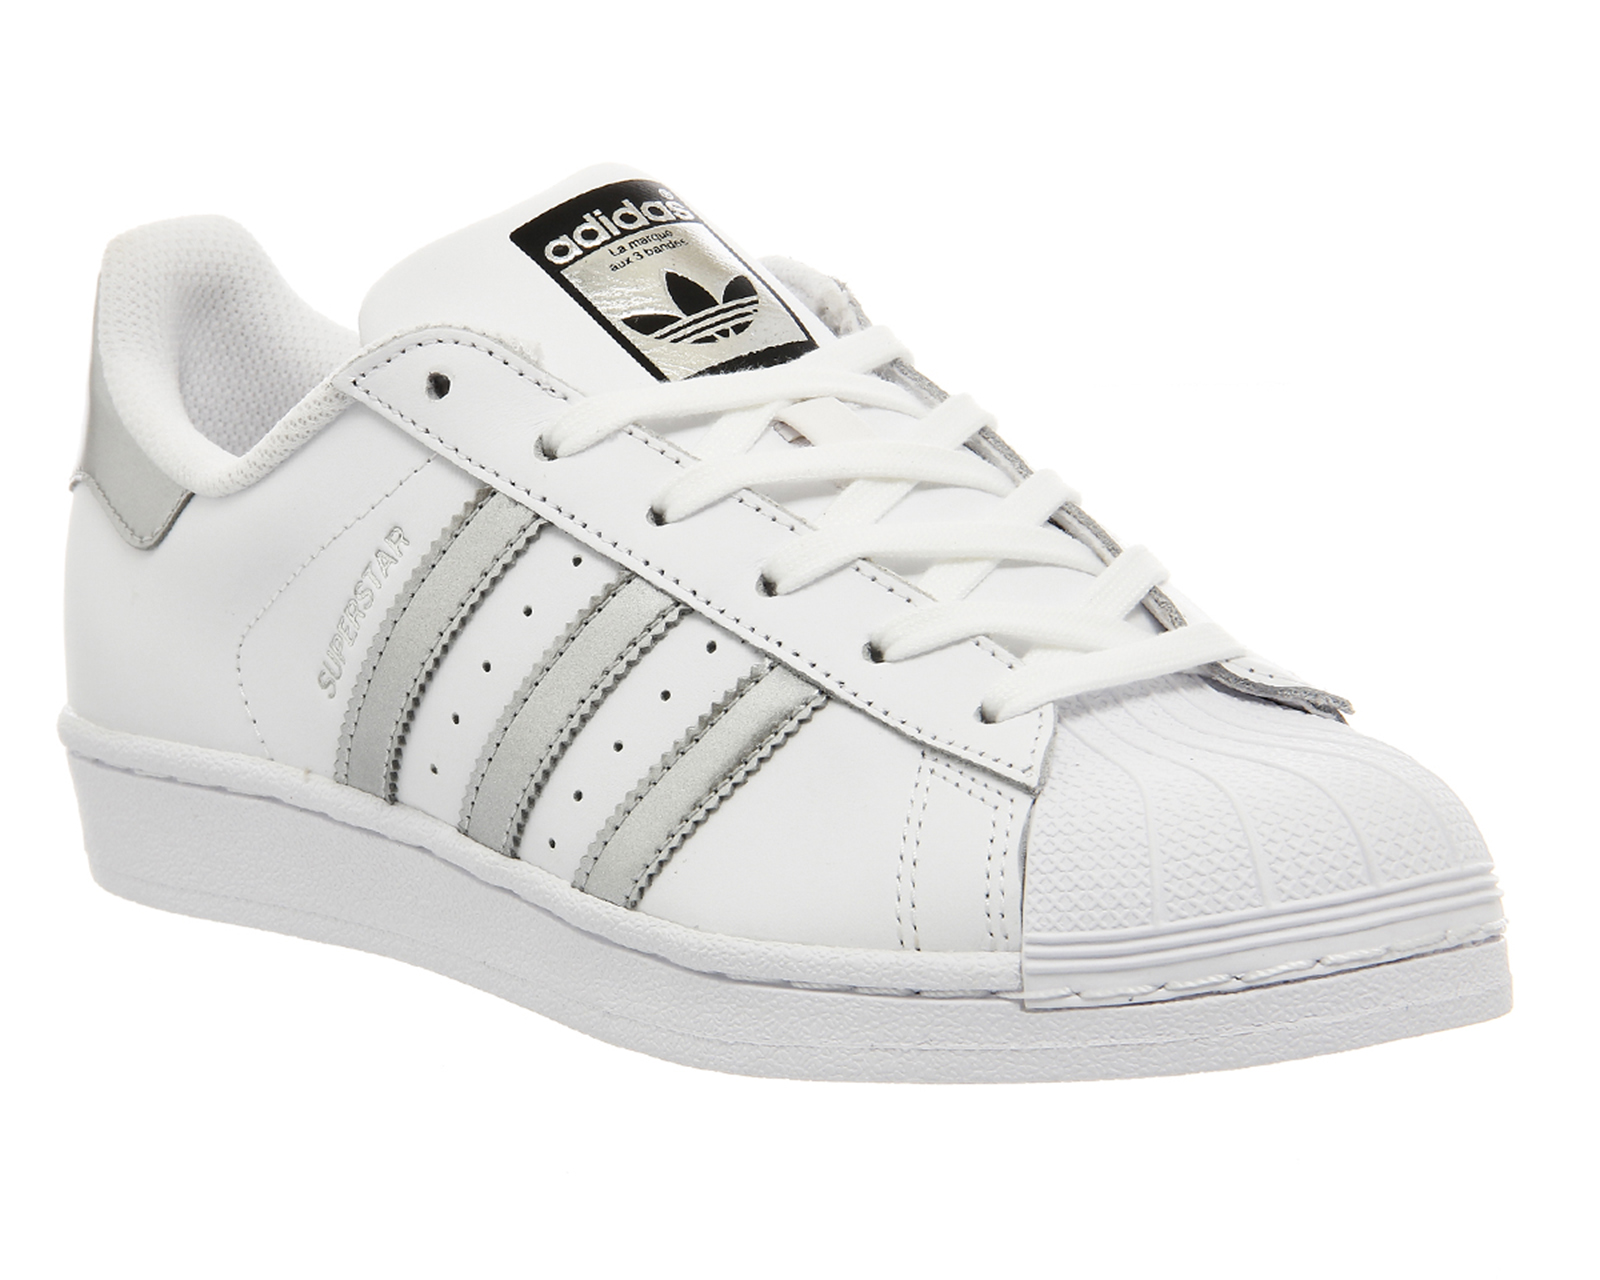 quality design 7d9a6 5120b Sentinel Womens Adidas White Leather Lace Up Trainers Size UK 6  Ex-Display